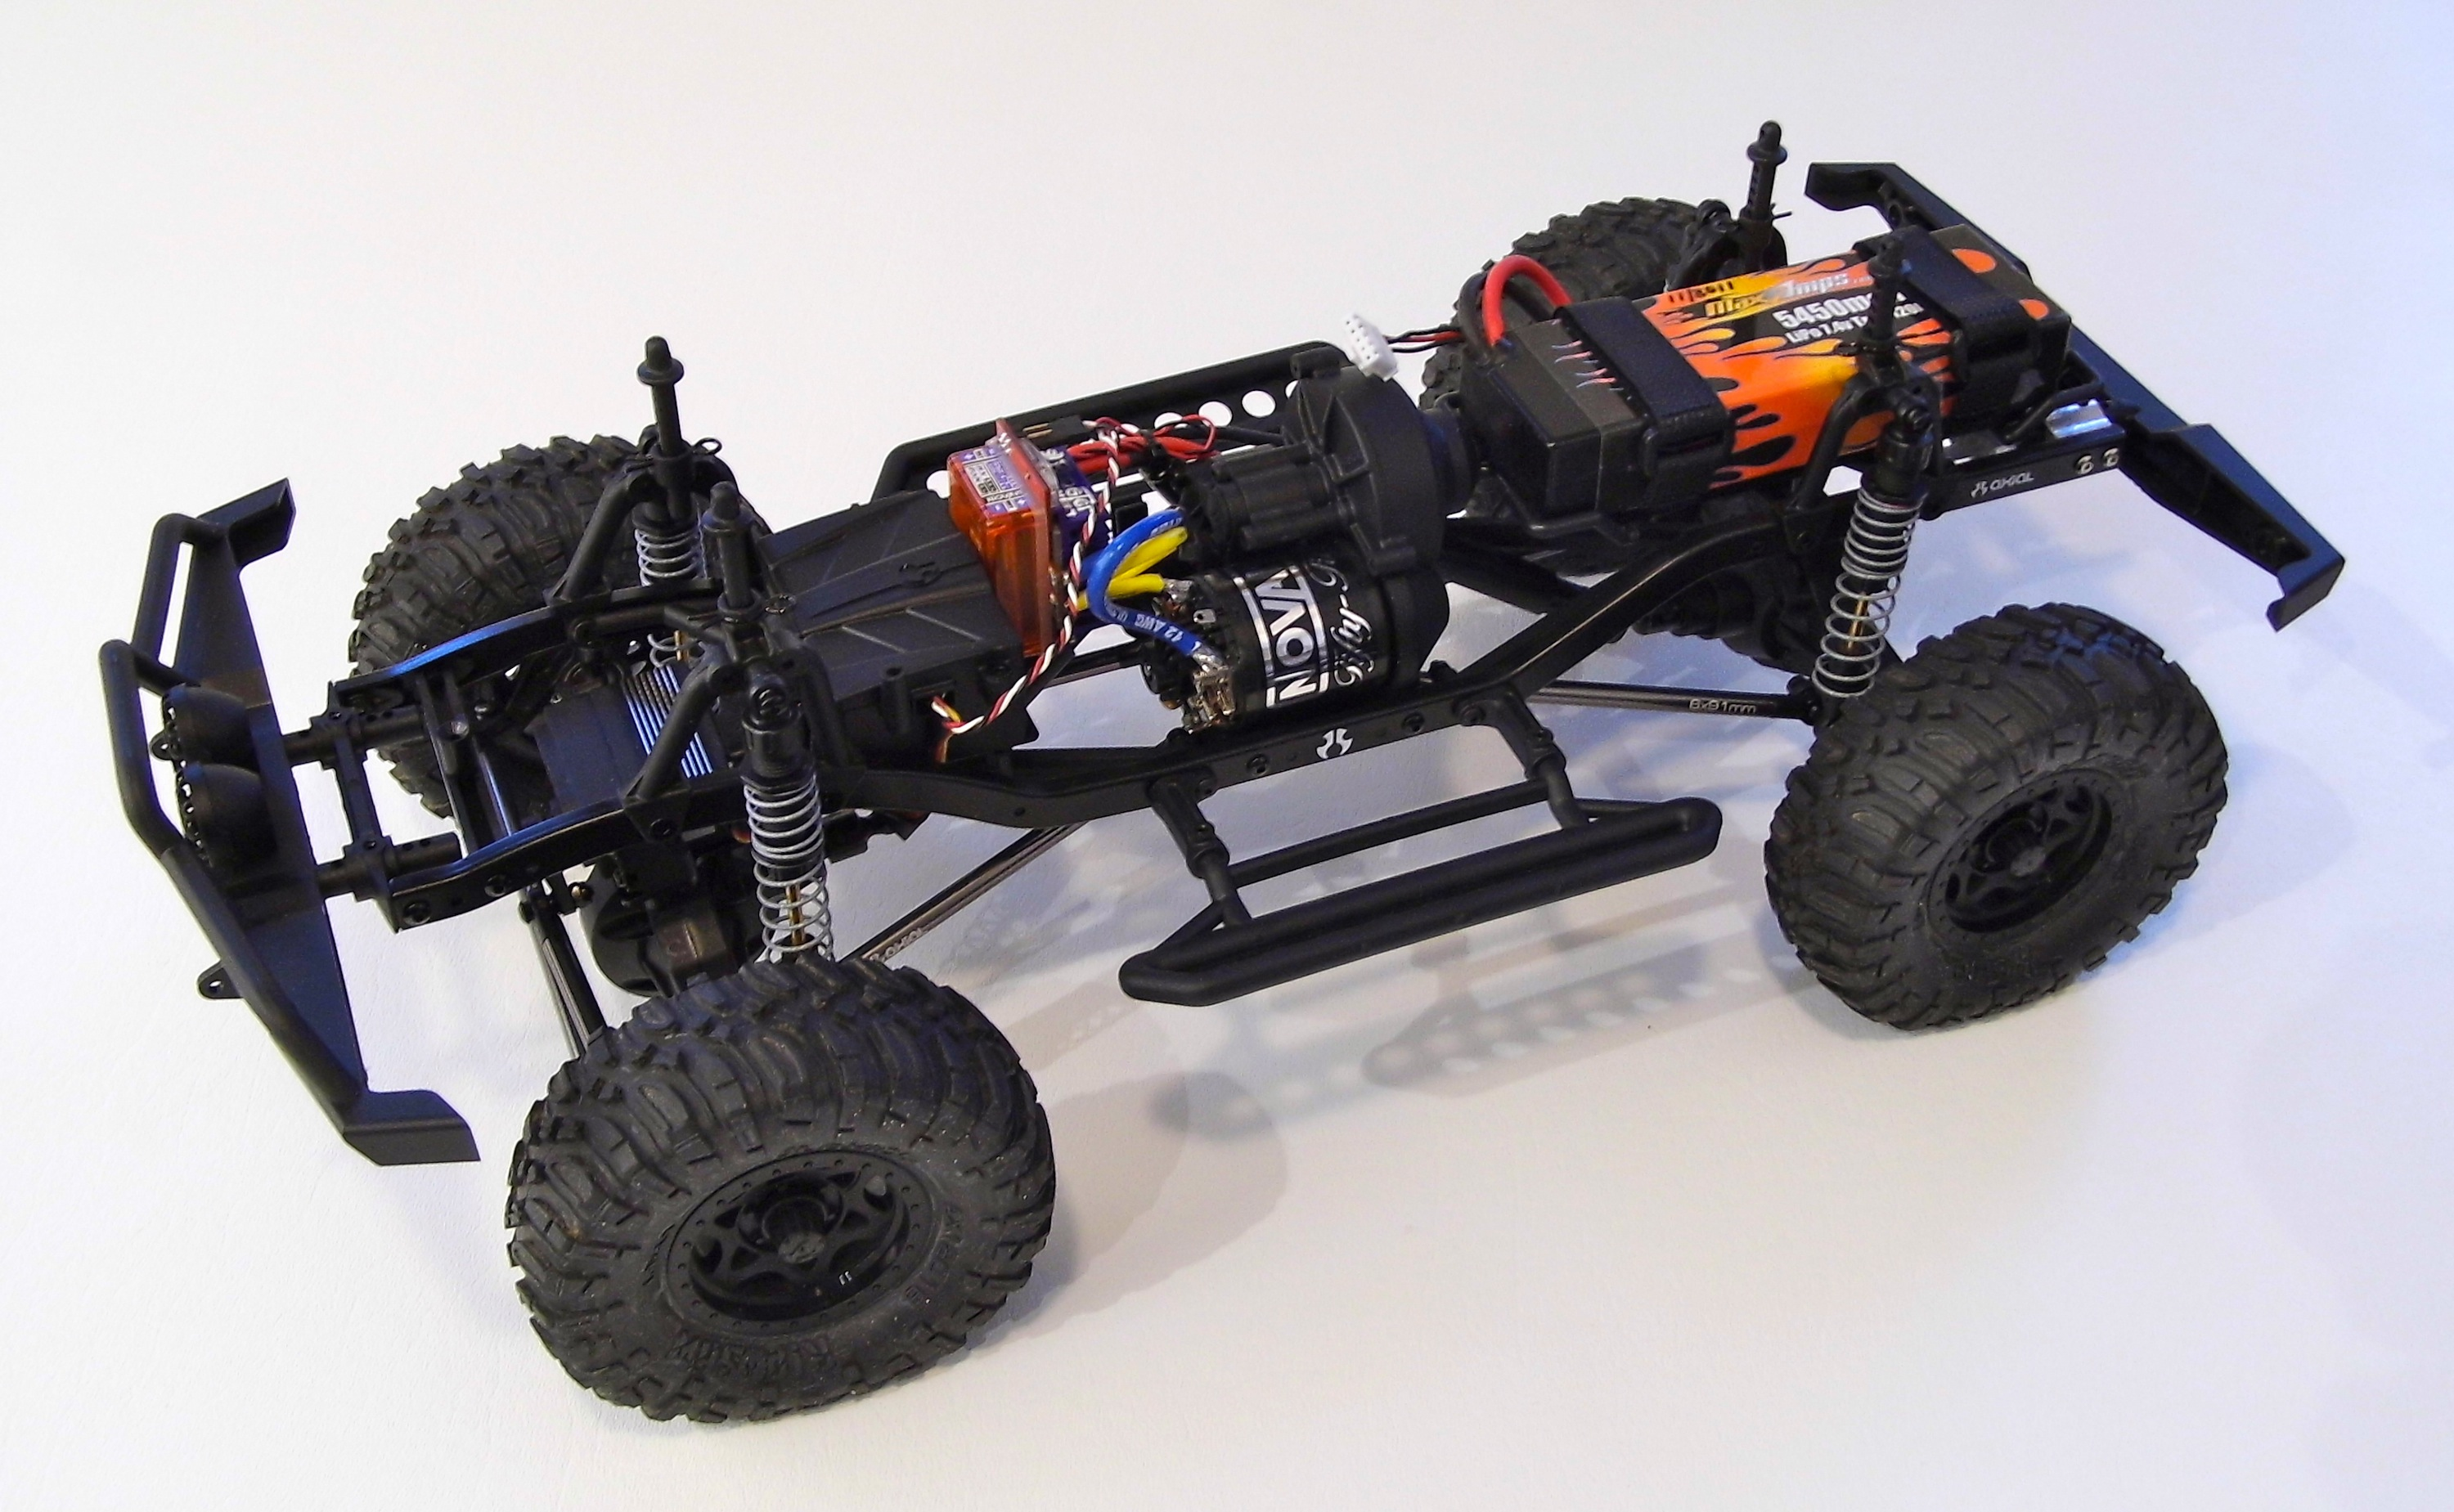 Setting up a chassis for D90 Land Rover body